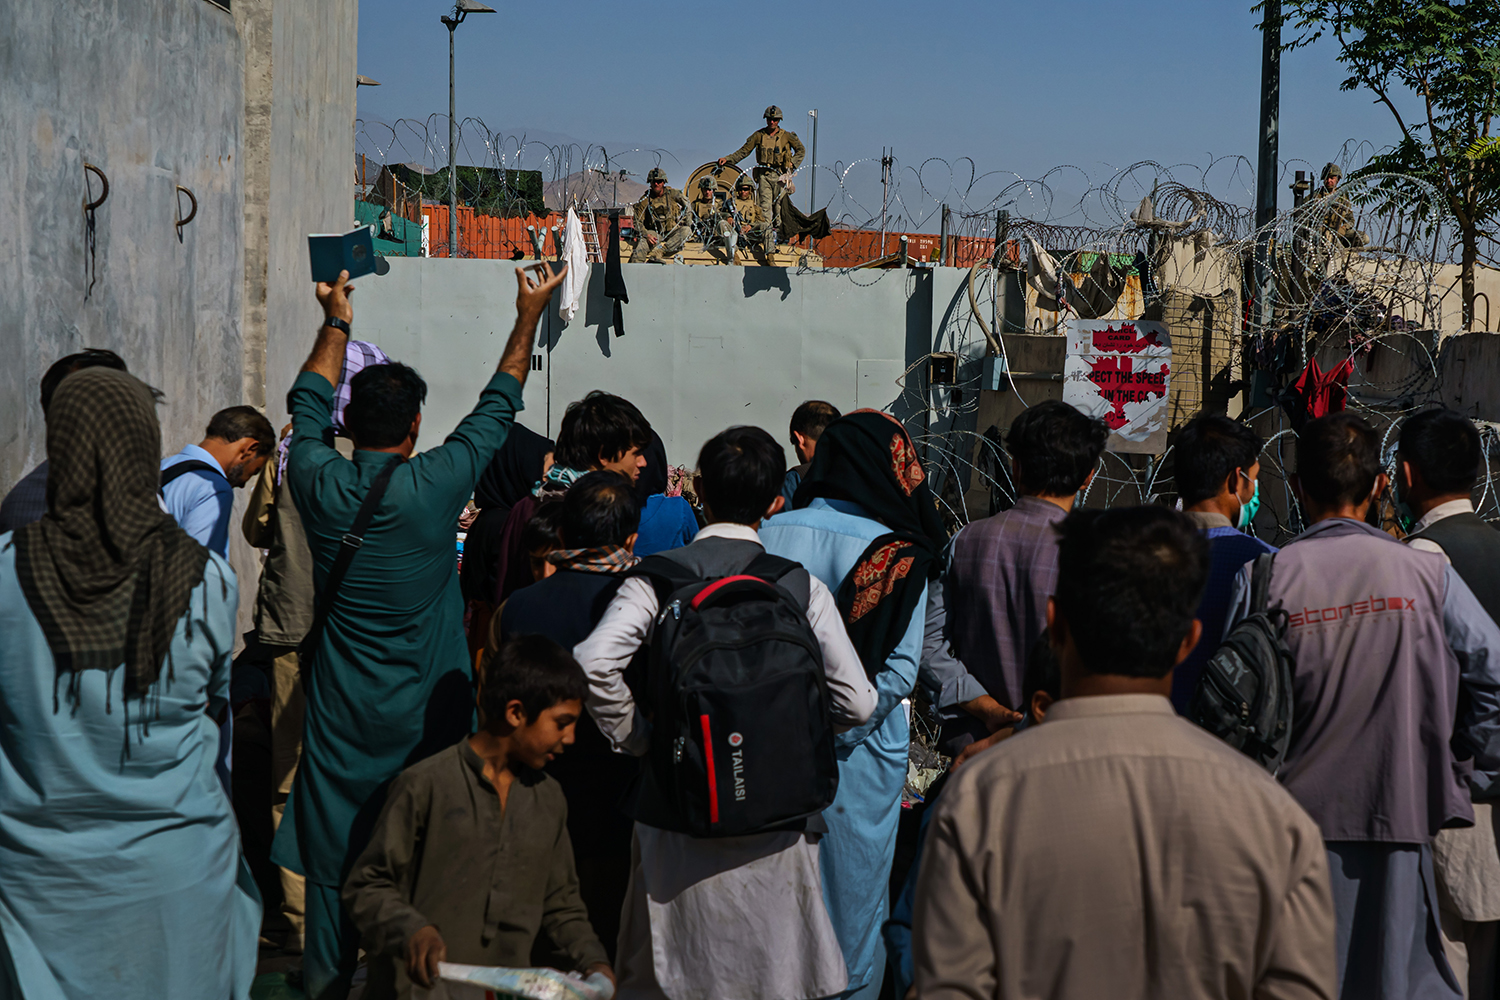 Afghans try to ask U.S. soldiers to let them into the Kabul airport.